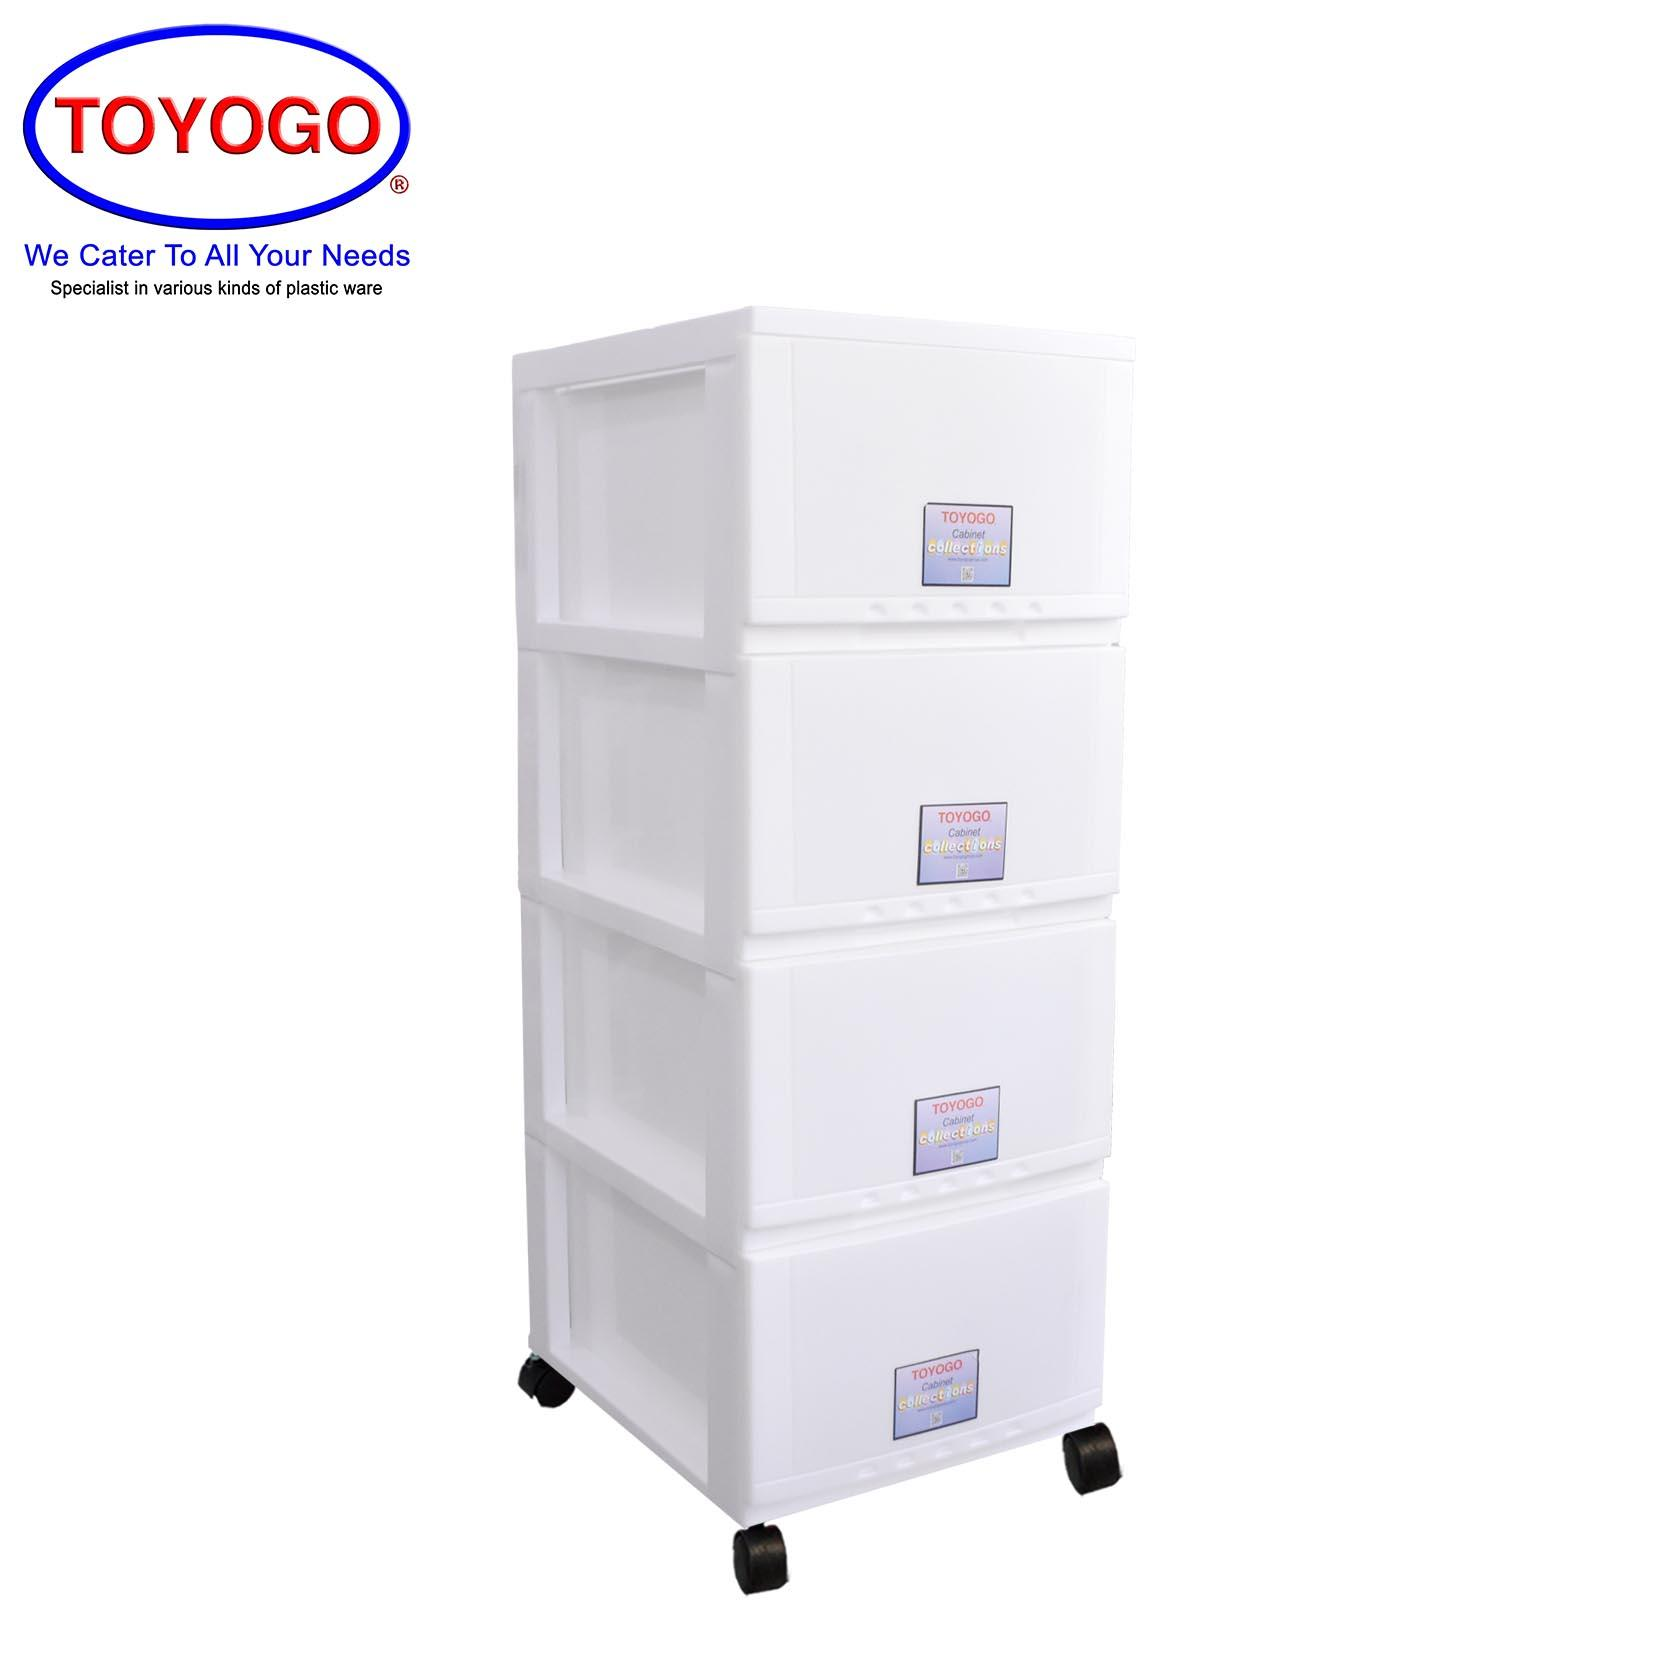 Toyogo Plastic Storage Cabinet / Drawer With Wheels (4 Tier) (607-4)